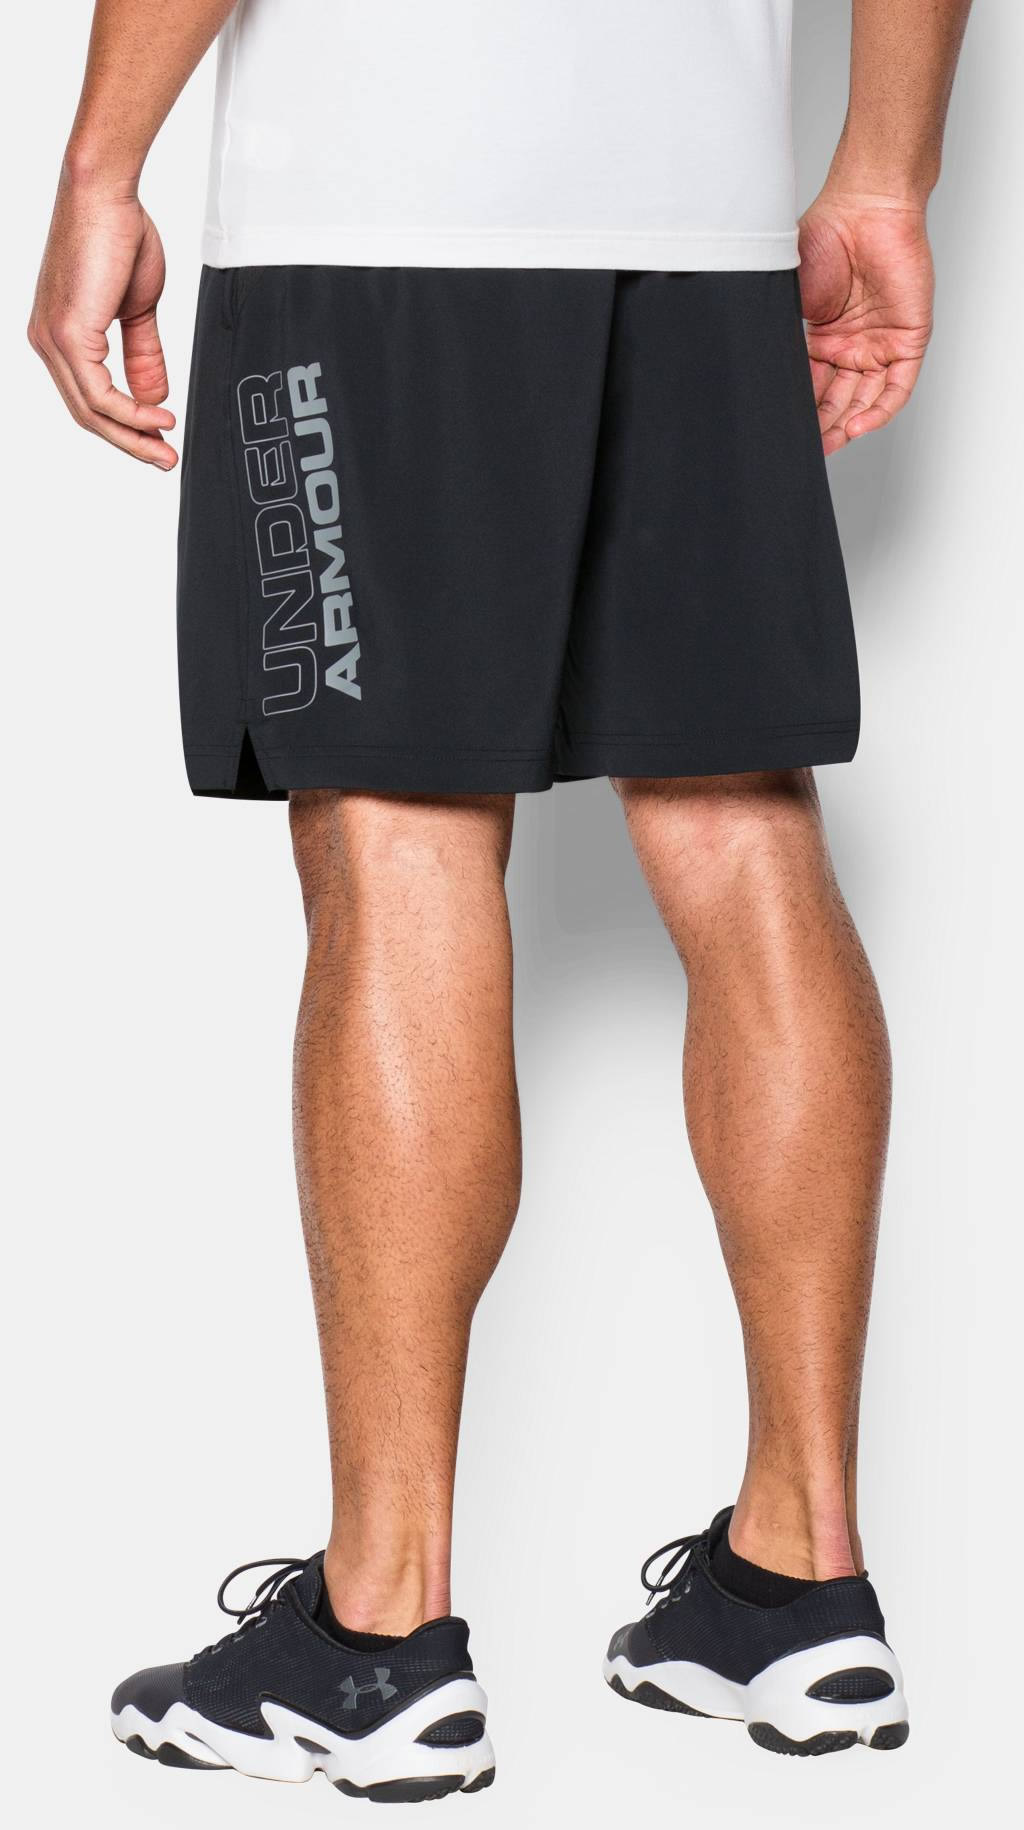 Under Armour Men's Black Shorts